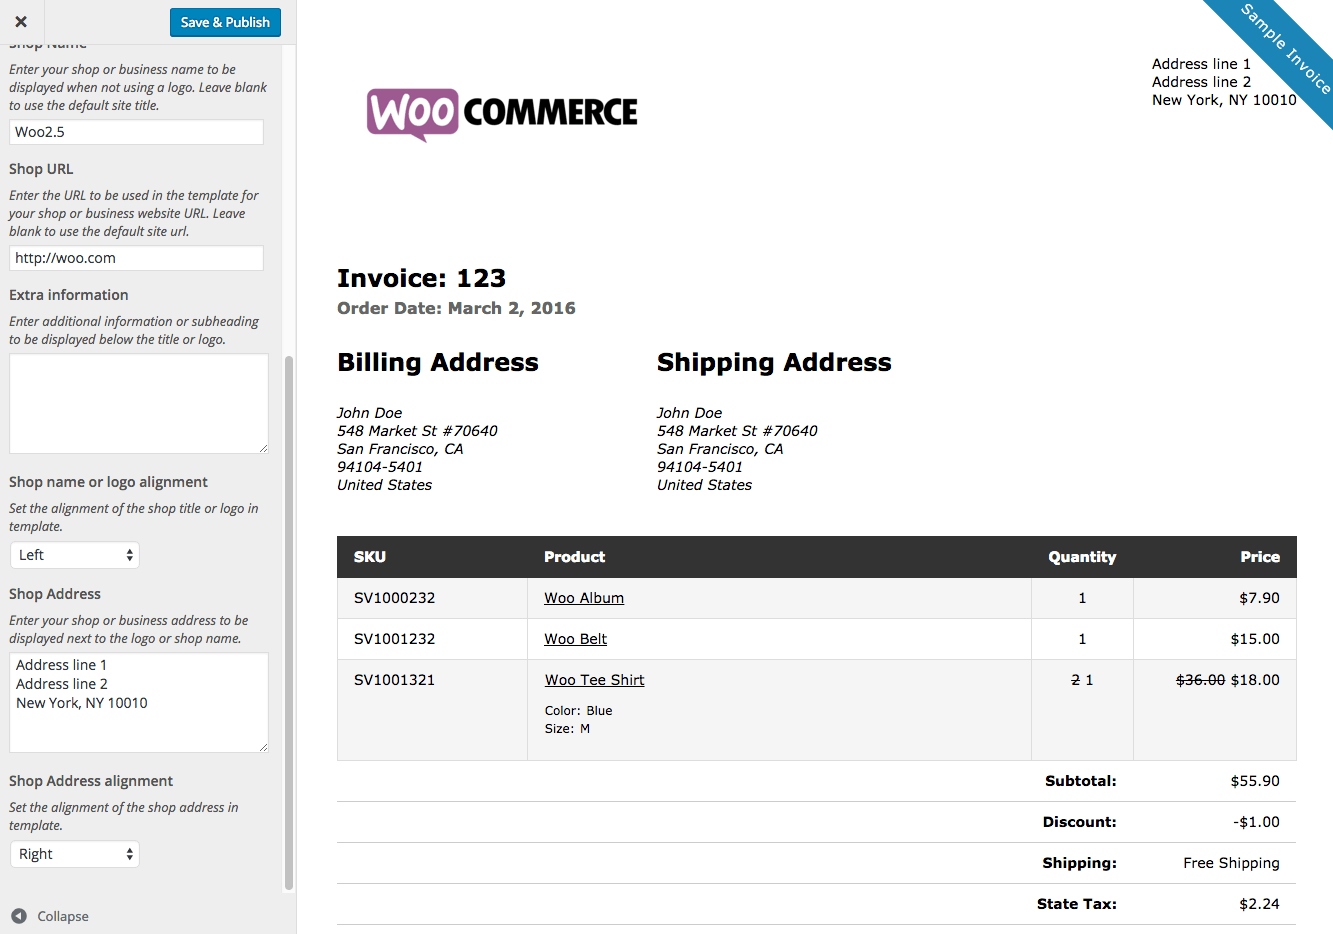 Opportunitycaus  Pleasant Print Invoices Amp Packing Lists  Woocommerce With Goodlooking Woocommerce Print Invoices  Packing Lists Customizer With Beautiful Sales Invoices Also  Honda Accord Invoice Price In Addition Invoice Prices And Free Printable Invoices Online As Well As Toll Invoice Additionally Find Invoice Price From Woocommercecom With Opportunitycaus  Goodlooking Print Invoices Amp Packing Lists  Woocommerce With Beautiful Woocommerce Print Invoices  Packing Lists Customizer And Pleasant Sales Invoices Also  Honda Accord Invoice Price In Addition Invoice Prices From Woocommercecom